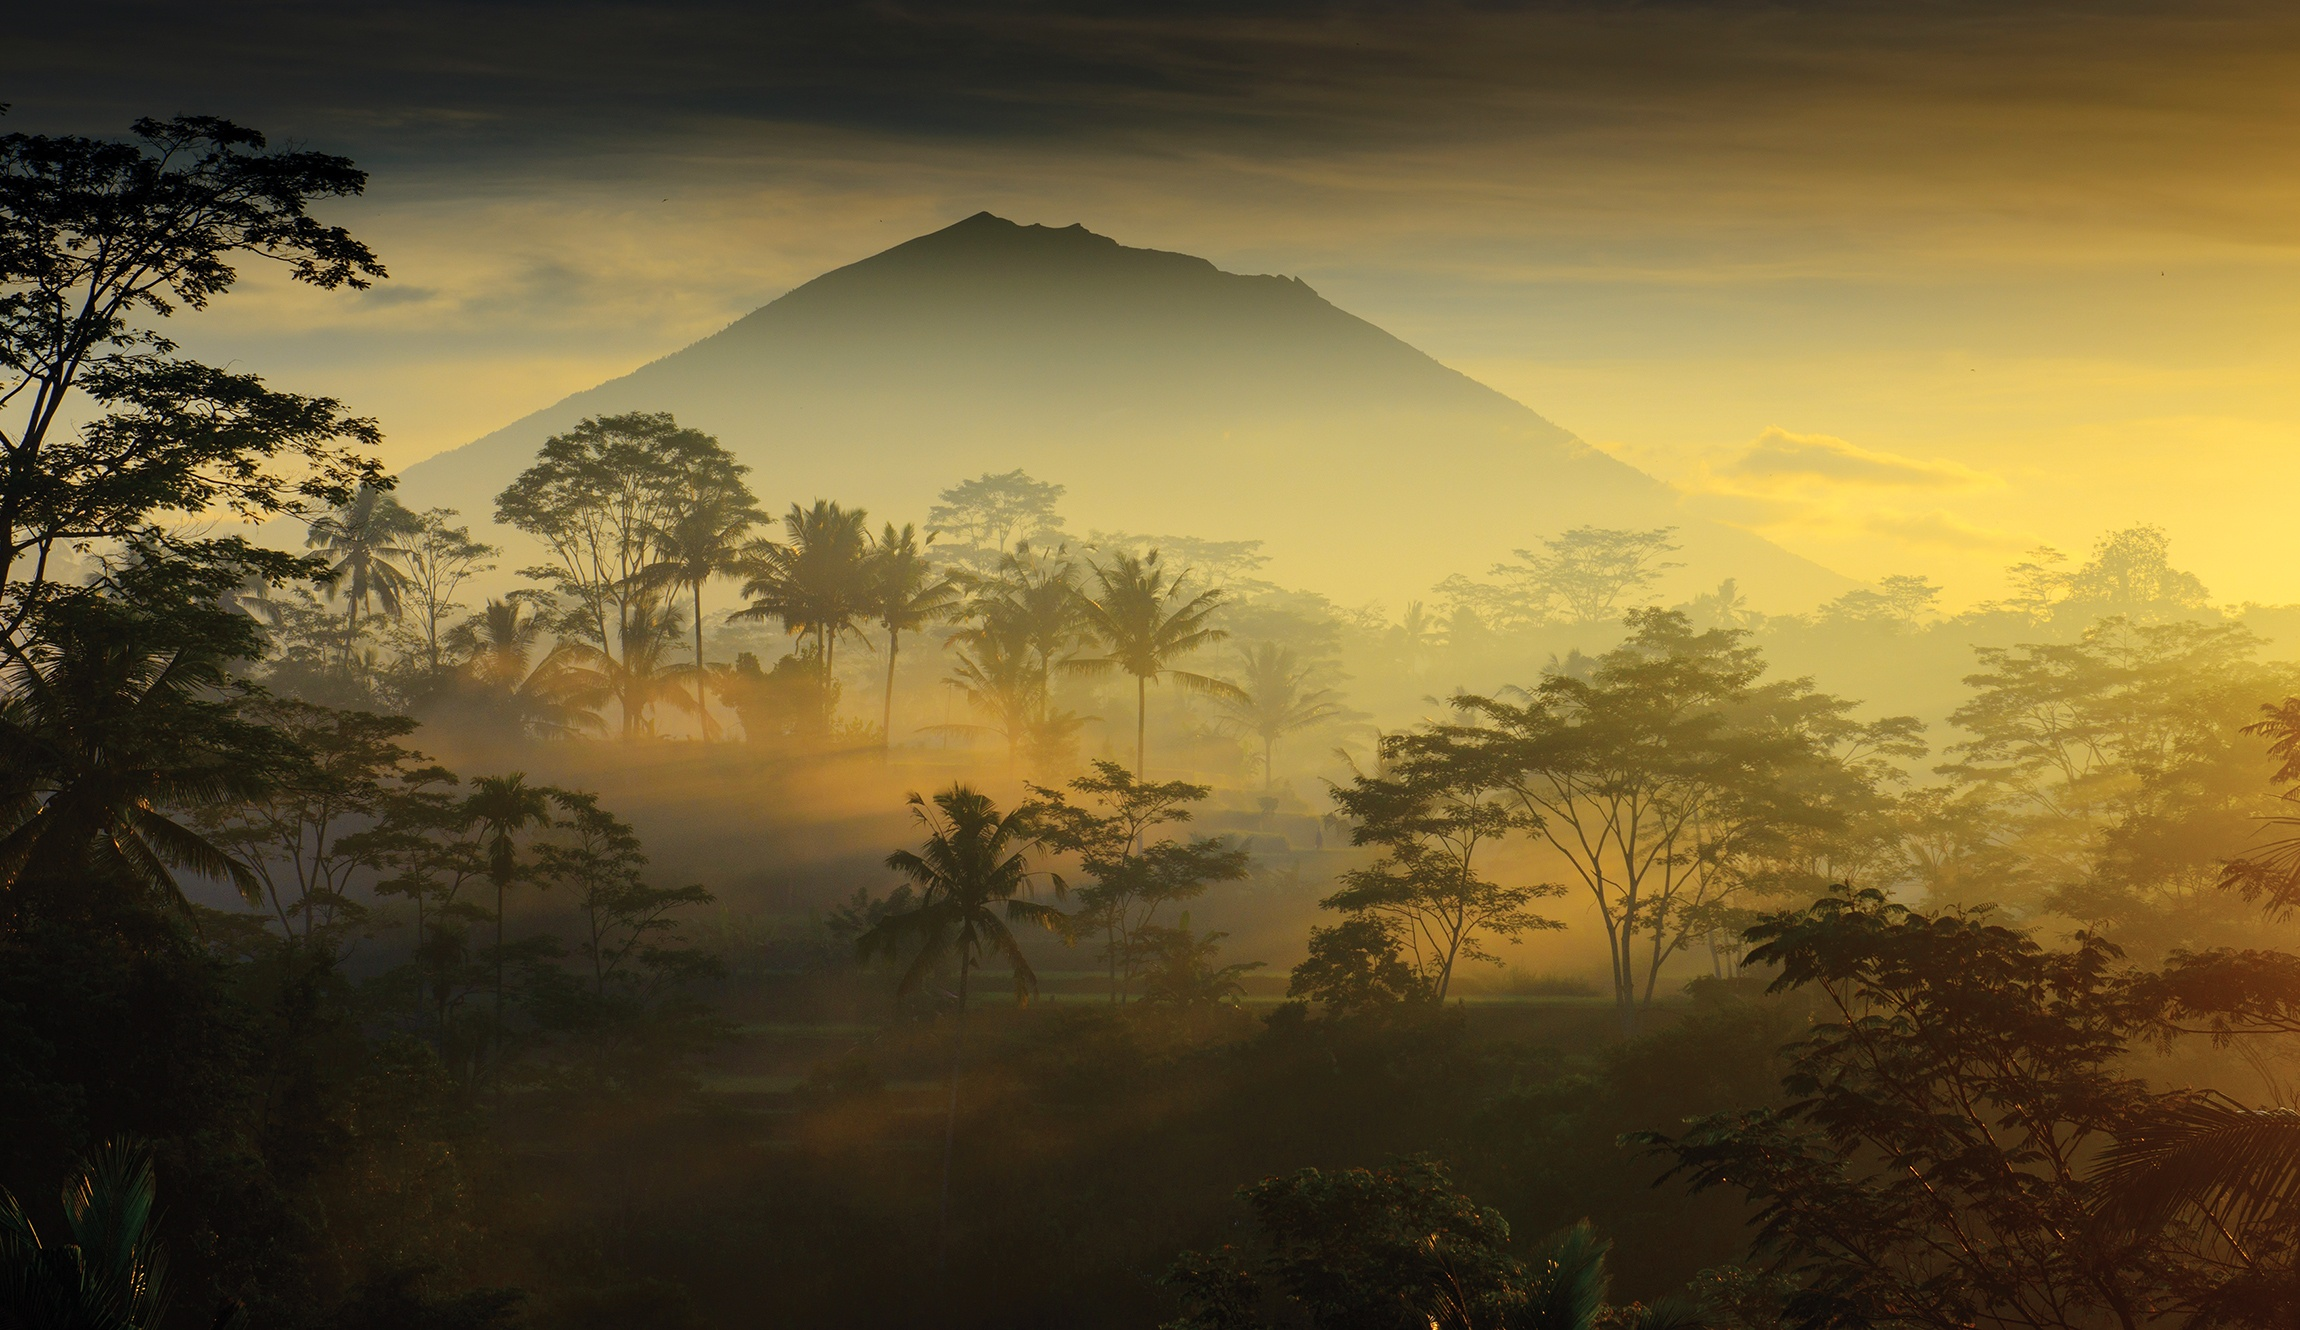 BALI MAGIC A typical morning in the Bali countryside as the mist infiltrates the palm trees and the towering shape of Gunung Agung. The sacred Volcano looms above the landscape.